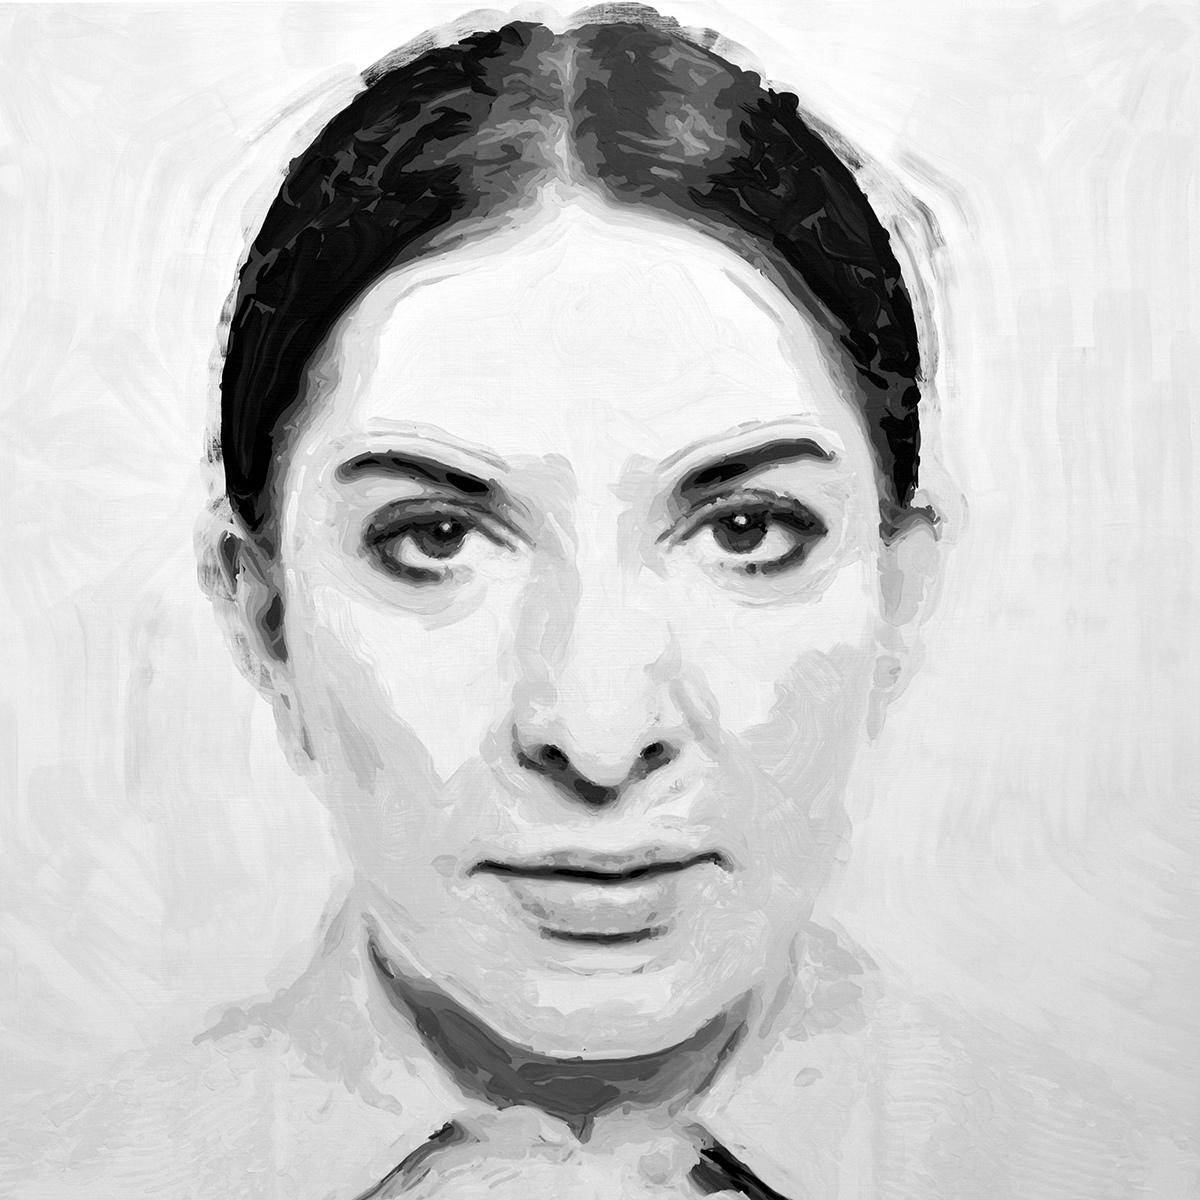 Rob and Nick Carter - RN1257, Marina Abramovic - Robot Painting - Painting time: 31:33:15 - Stroke count: 8,352, 5-7 January 2020 · © Copyright 2020